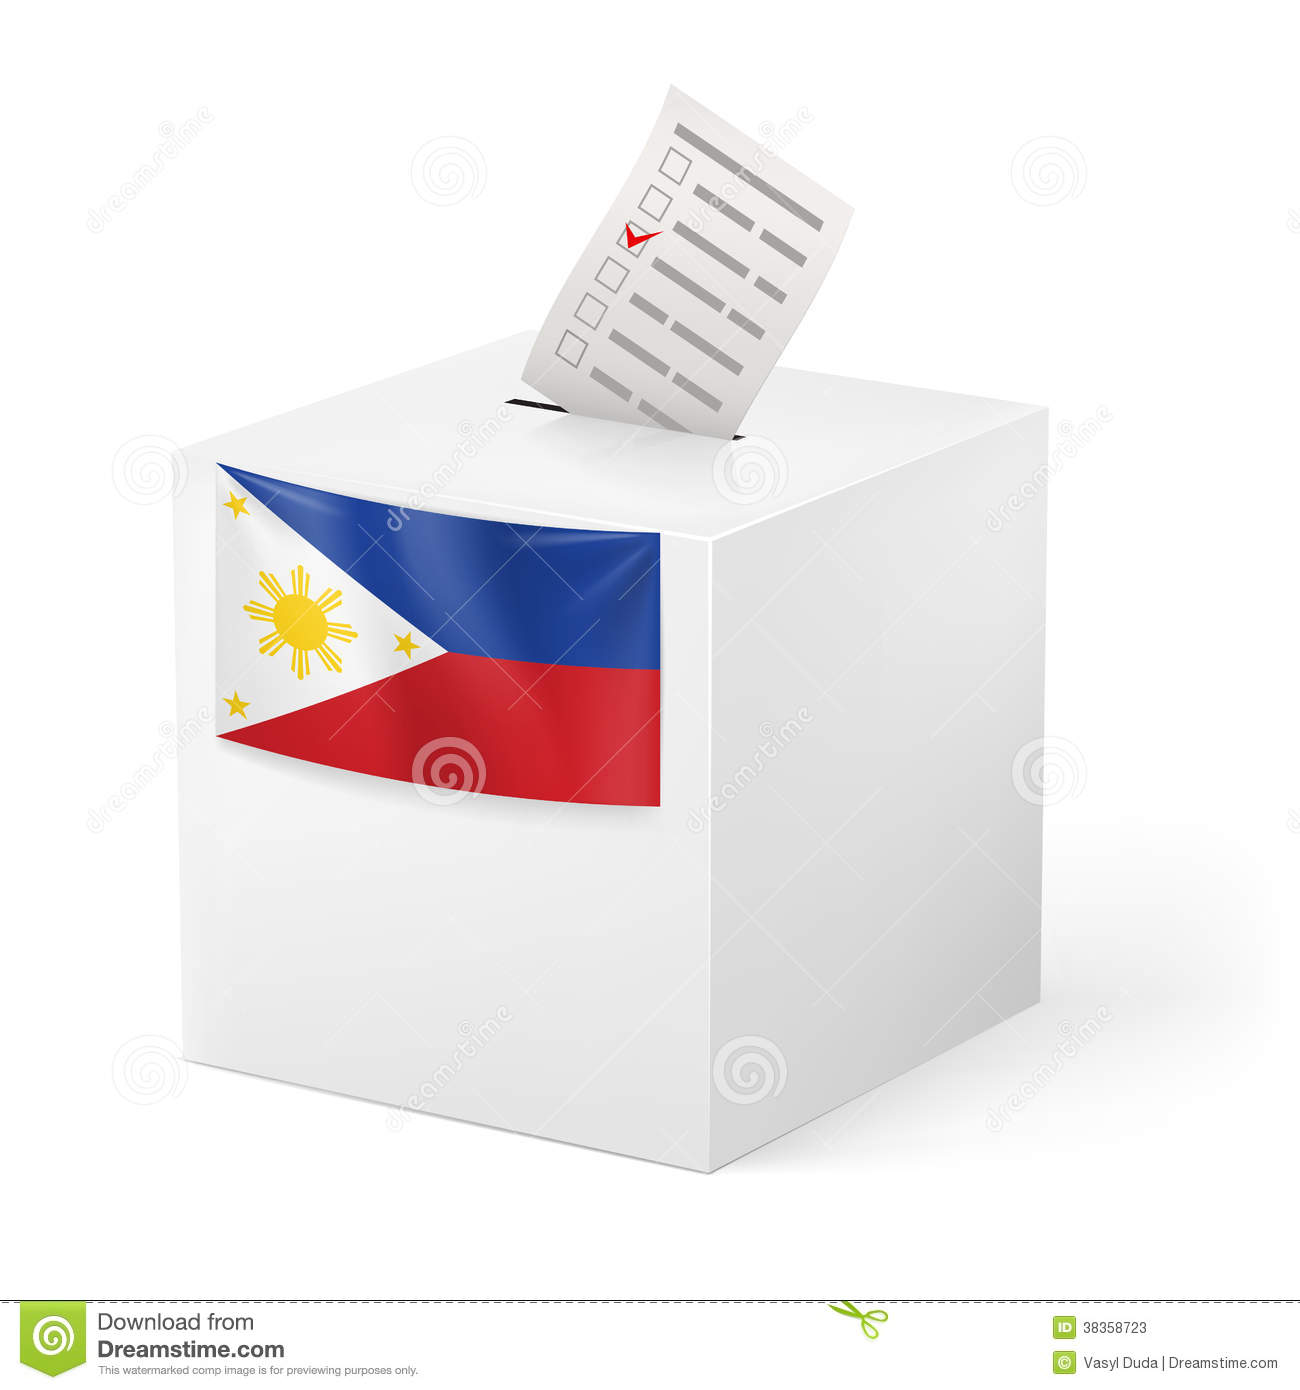 white paper on goverrnment nepotism in the philippines essay Philippines essays & research papers  flag of philippines there are three fields on the philippine flag the white equilateral triangle is on the hoist side,.